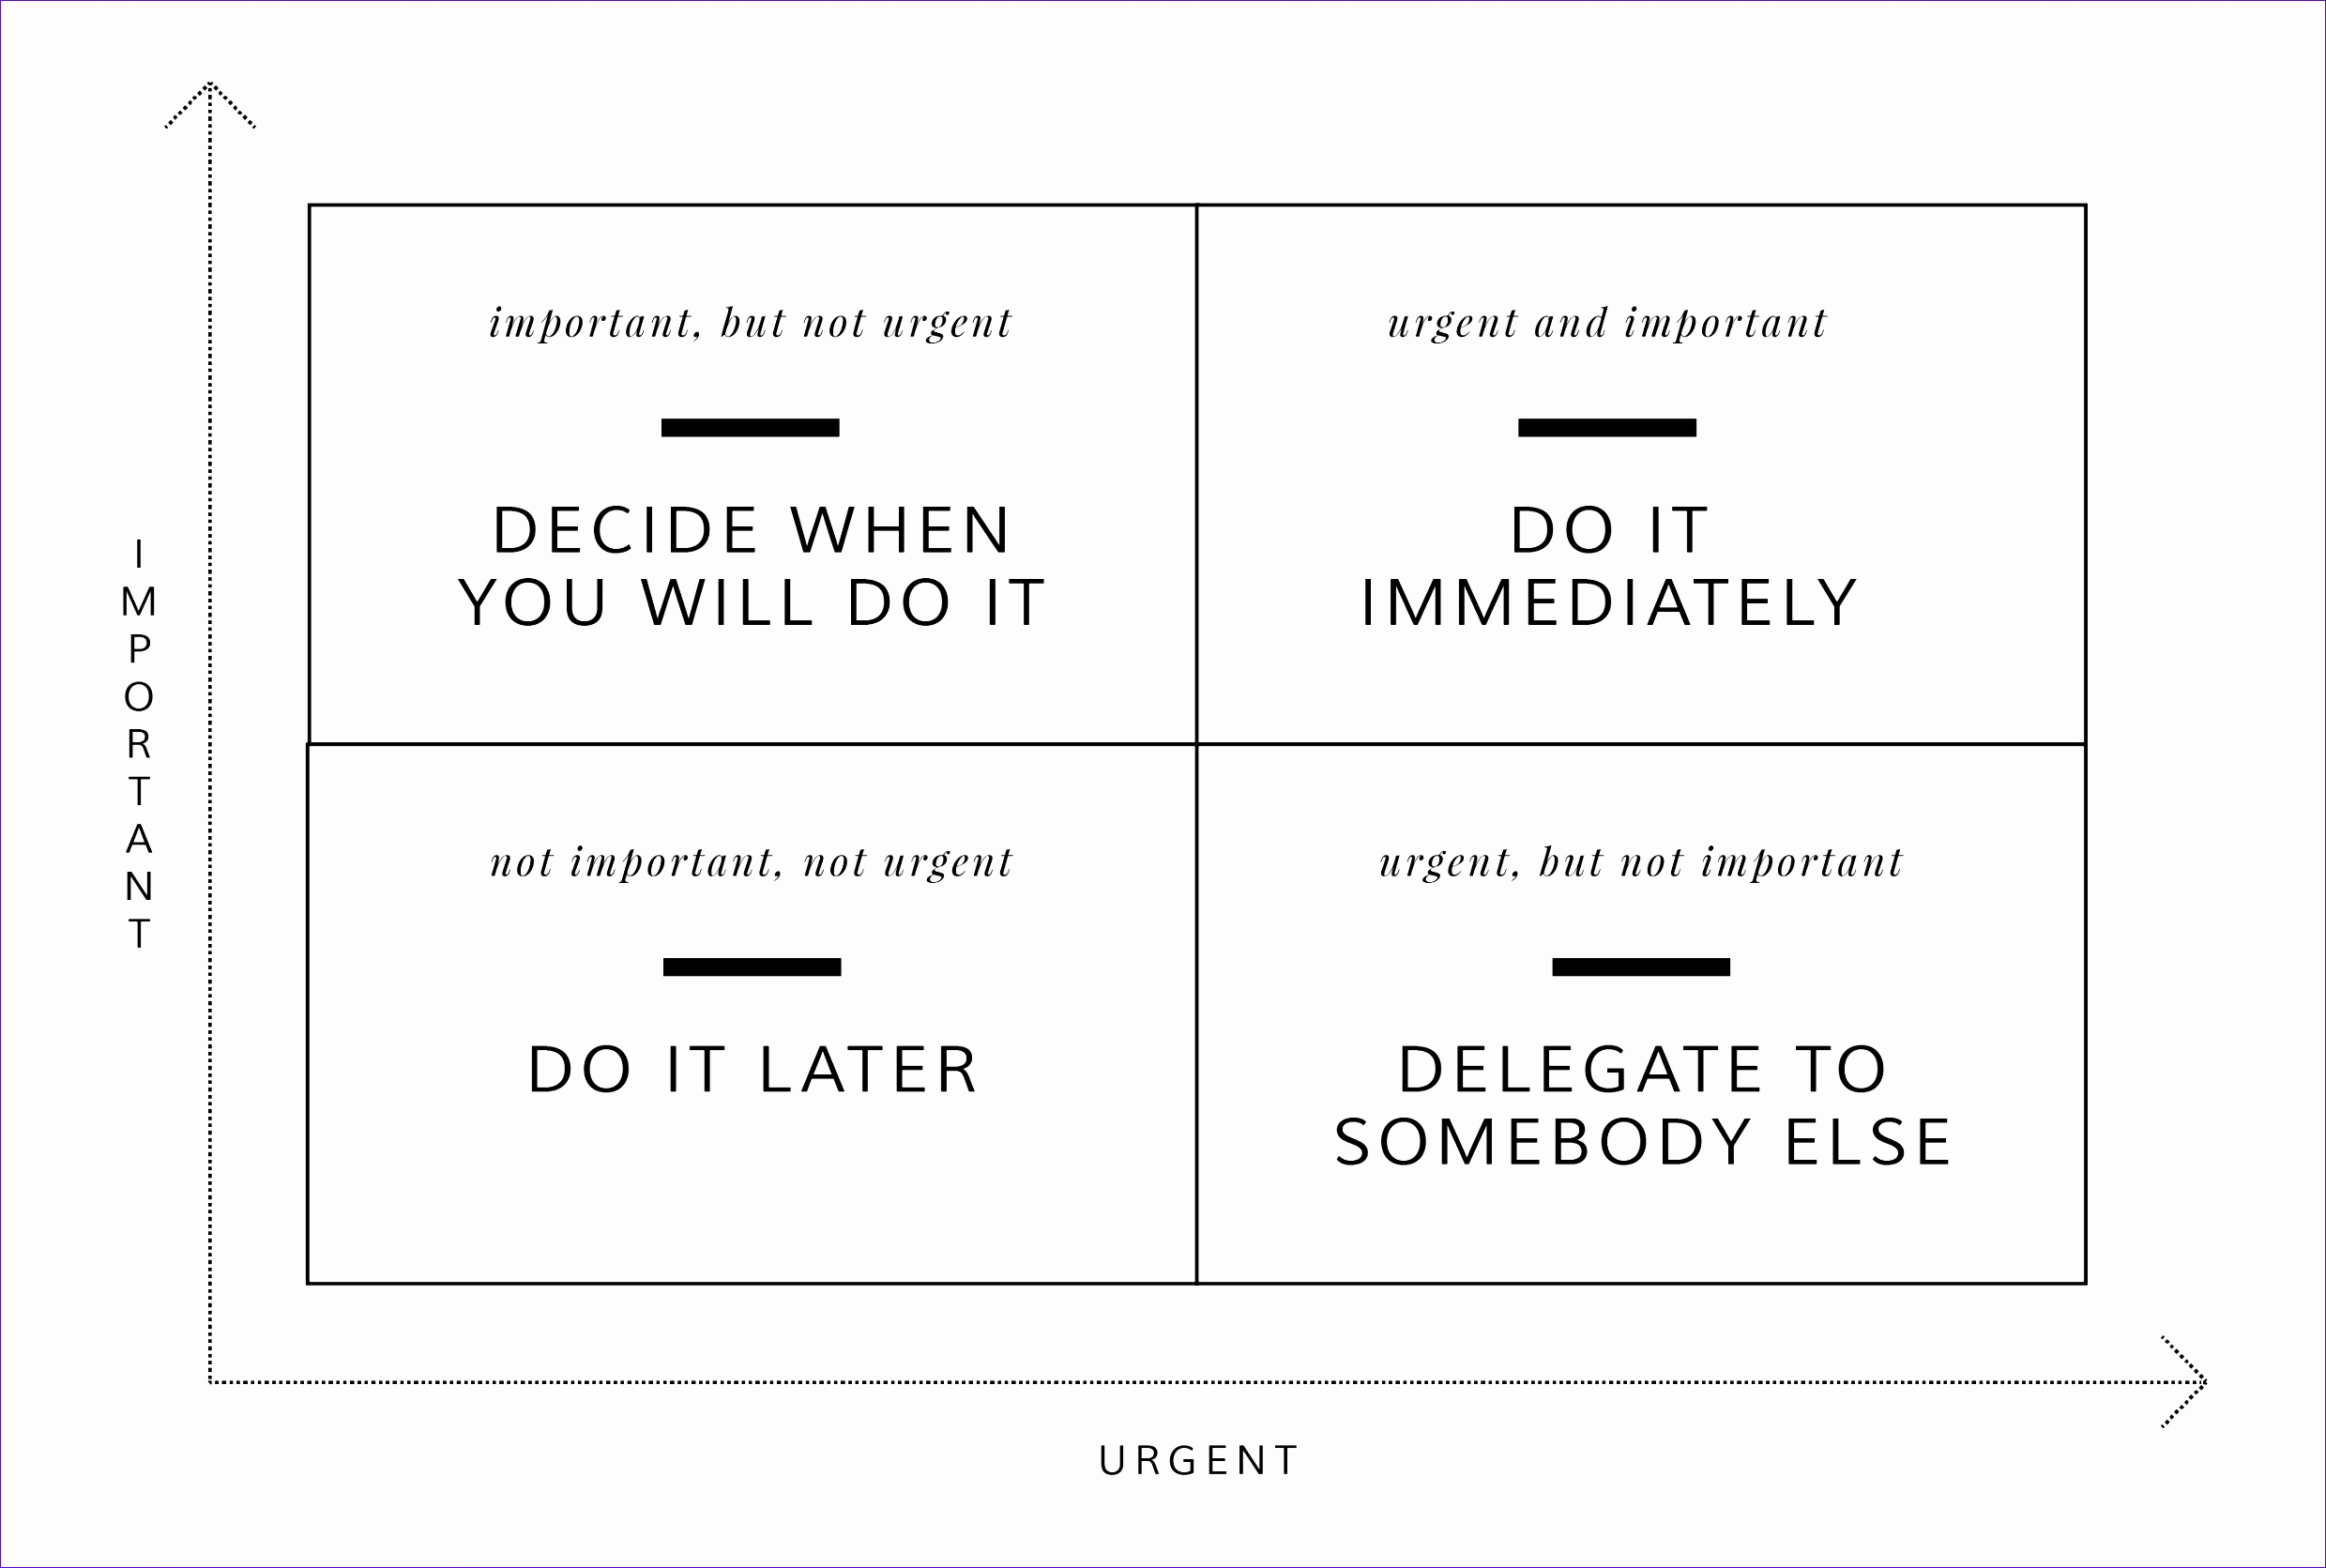 eisenhower matrix todoist 24791671